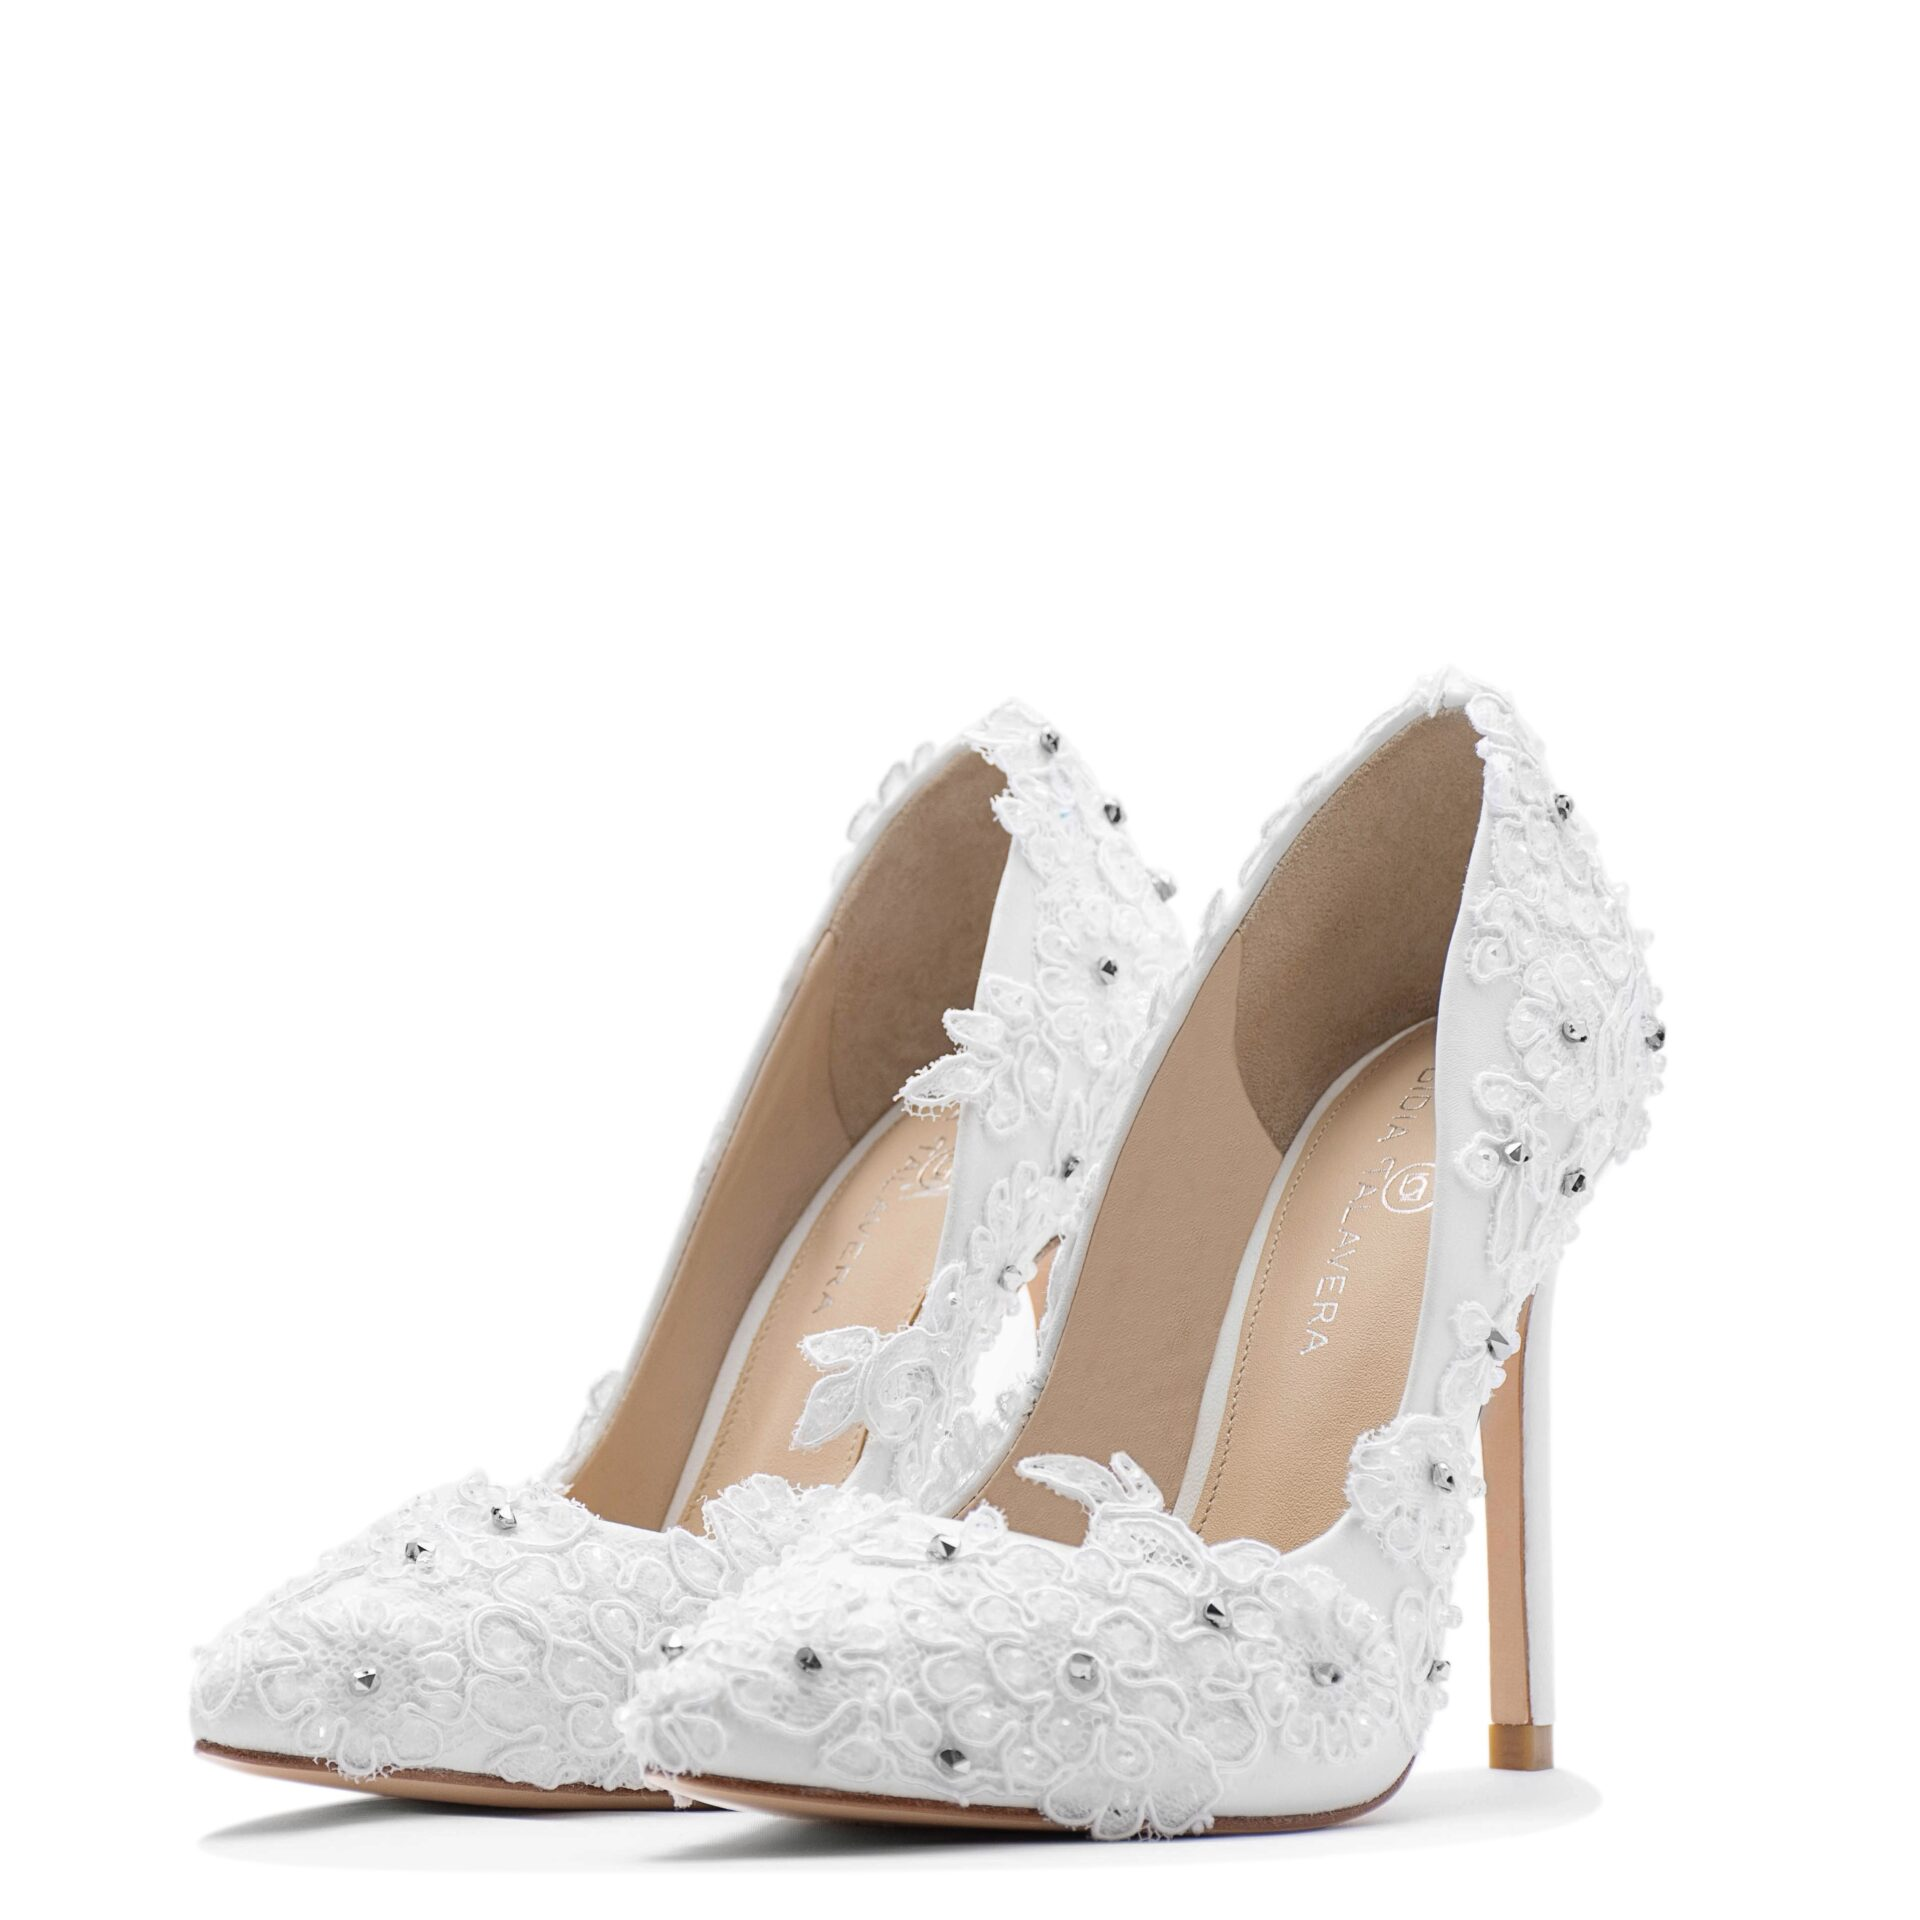 White Bride pointed toe pump with crystals